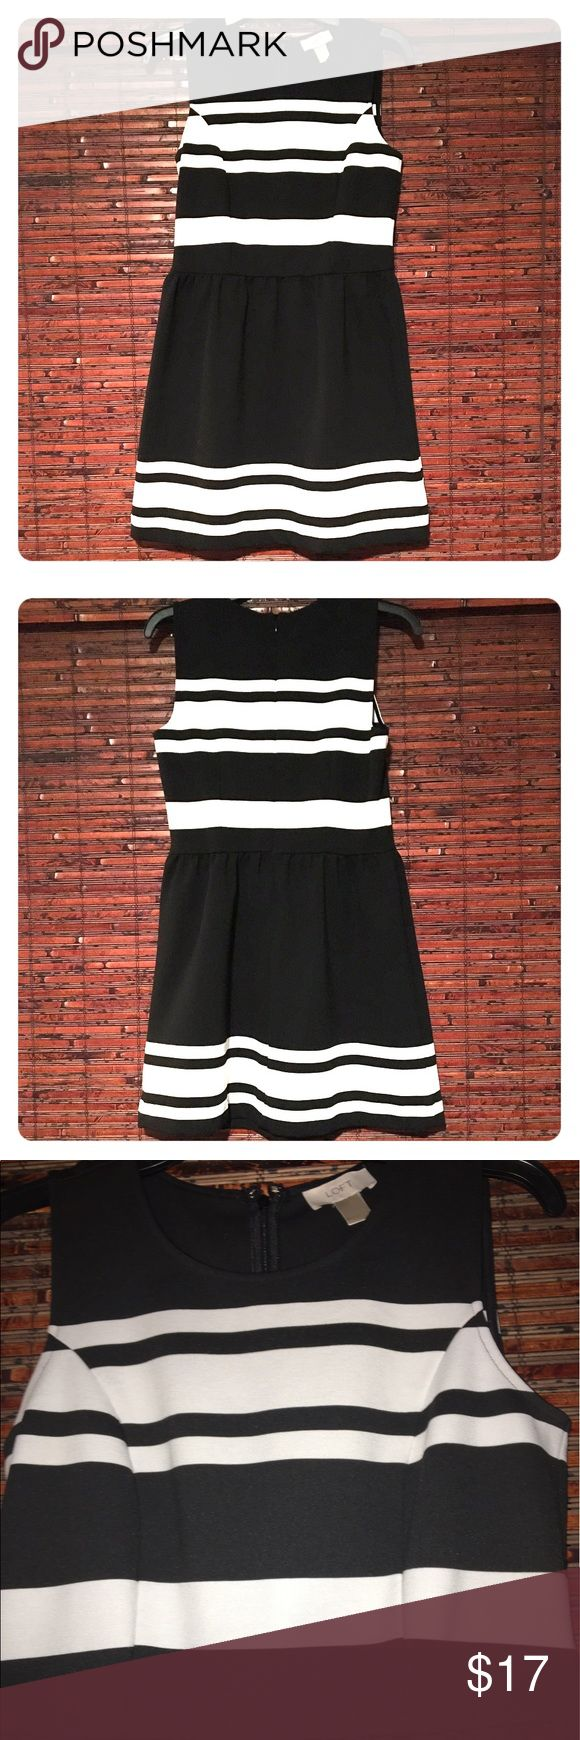 FLASH SALE ⚡️Business Casual Dress Black dress with white stripes! Super cute and business professional dress by Loft. Gently used and in perfect condition. ❤ LOFT Dresses